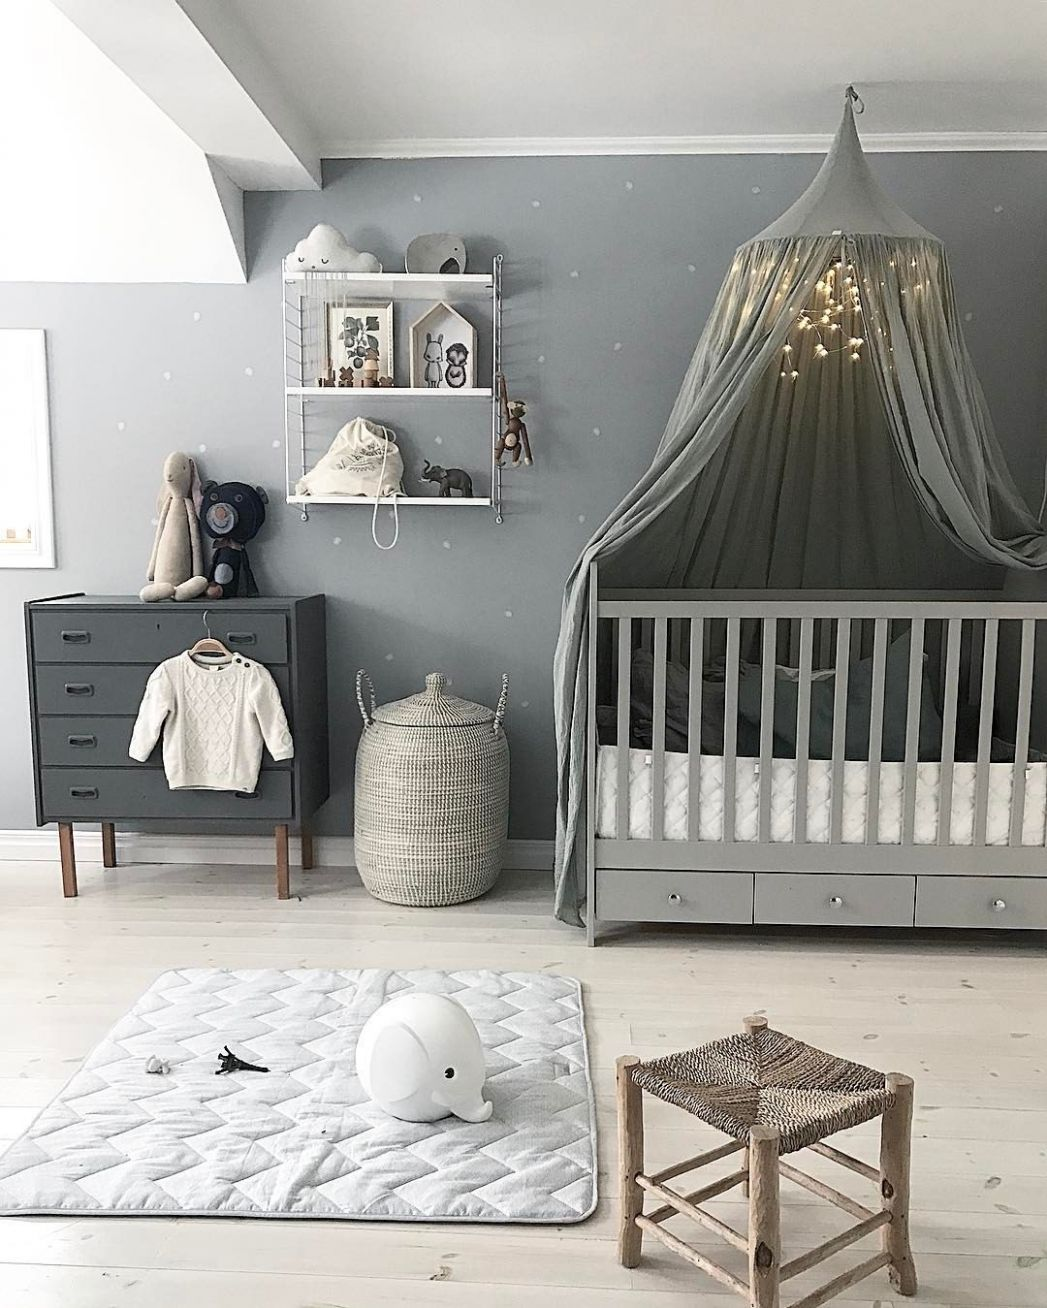 Pin on Nursery/Kids interior